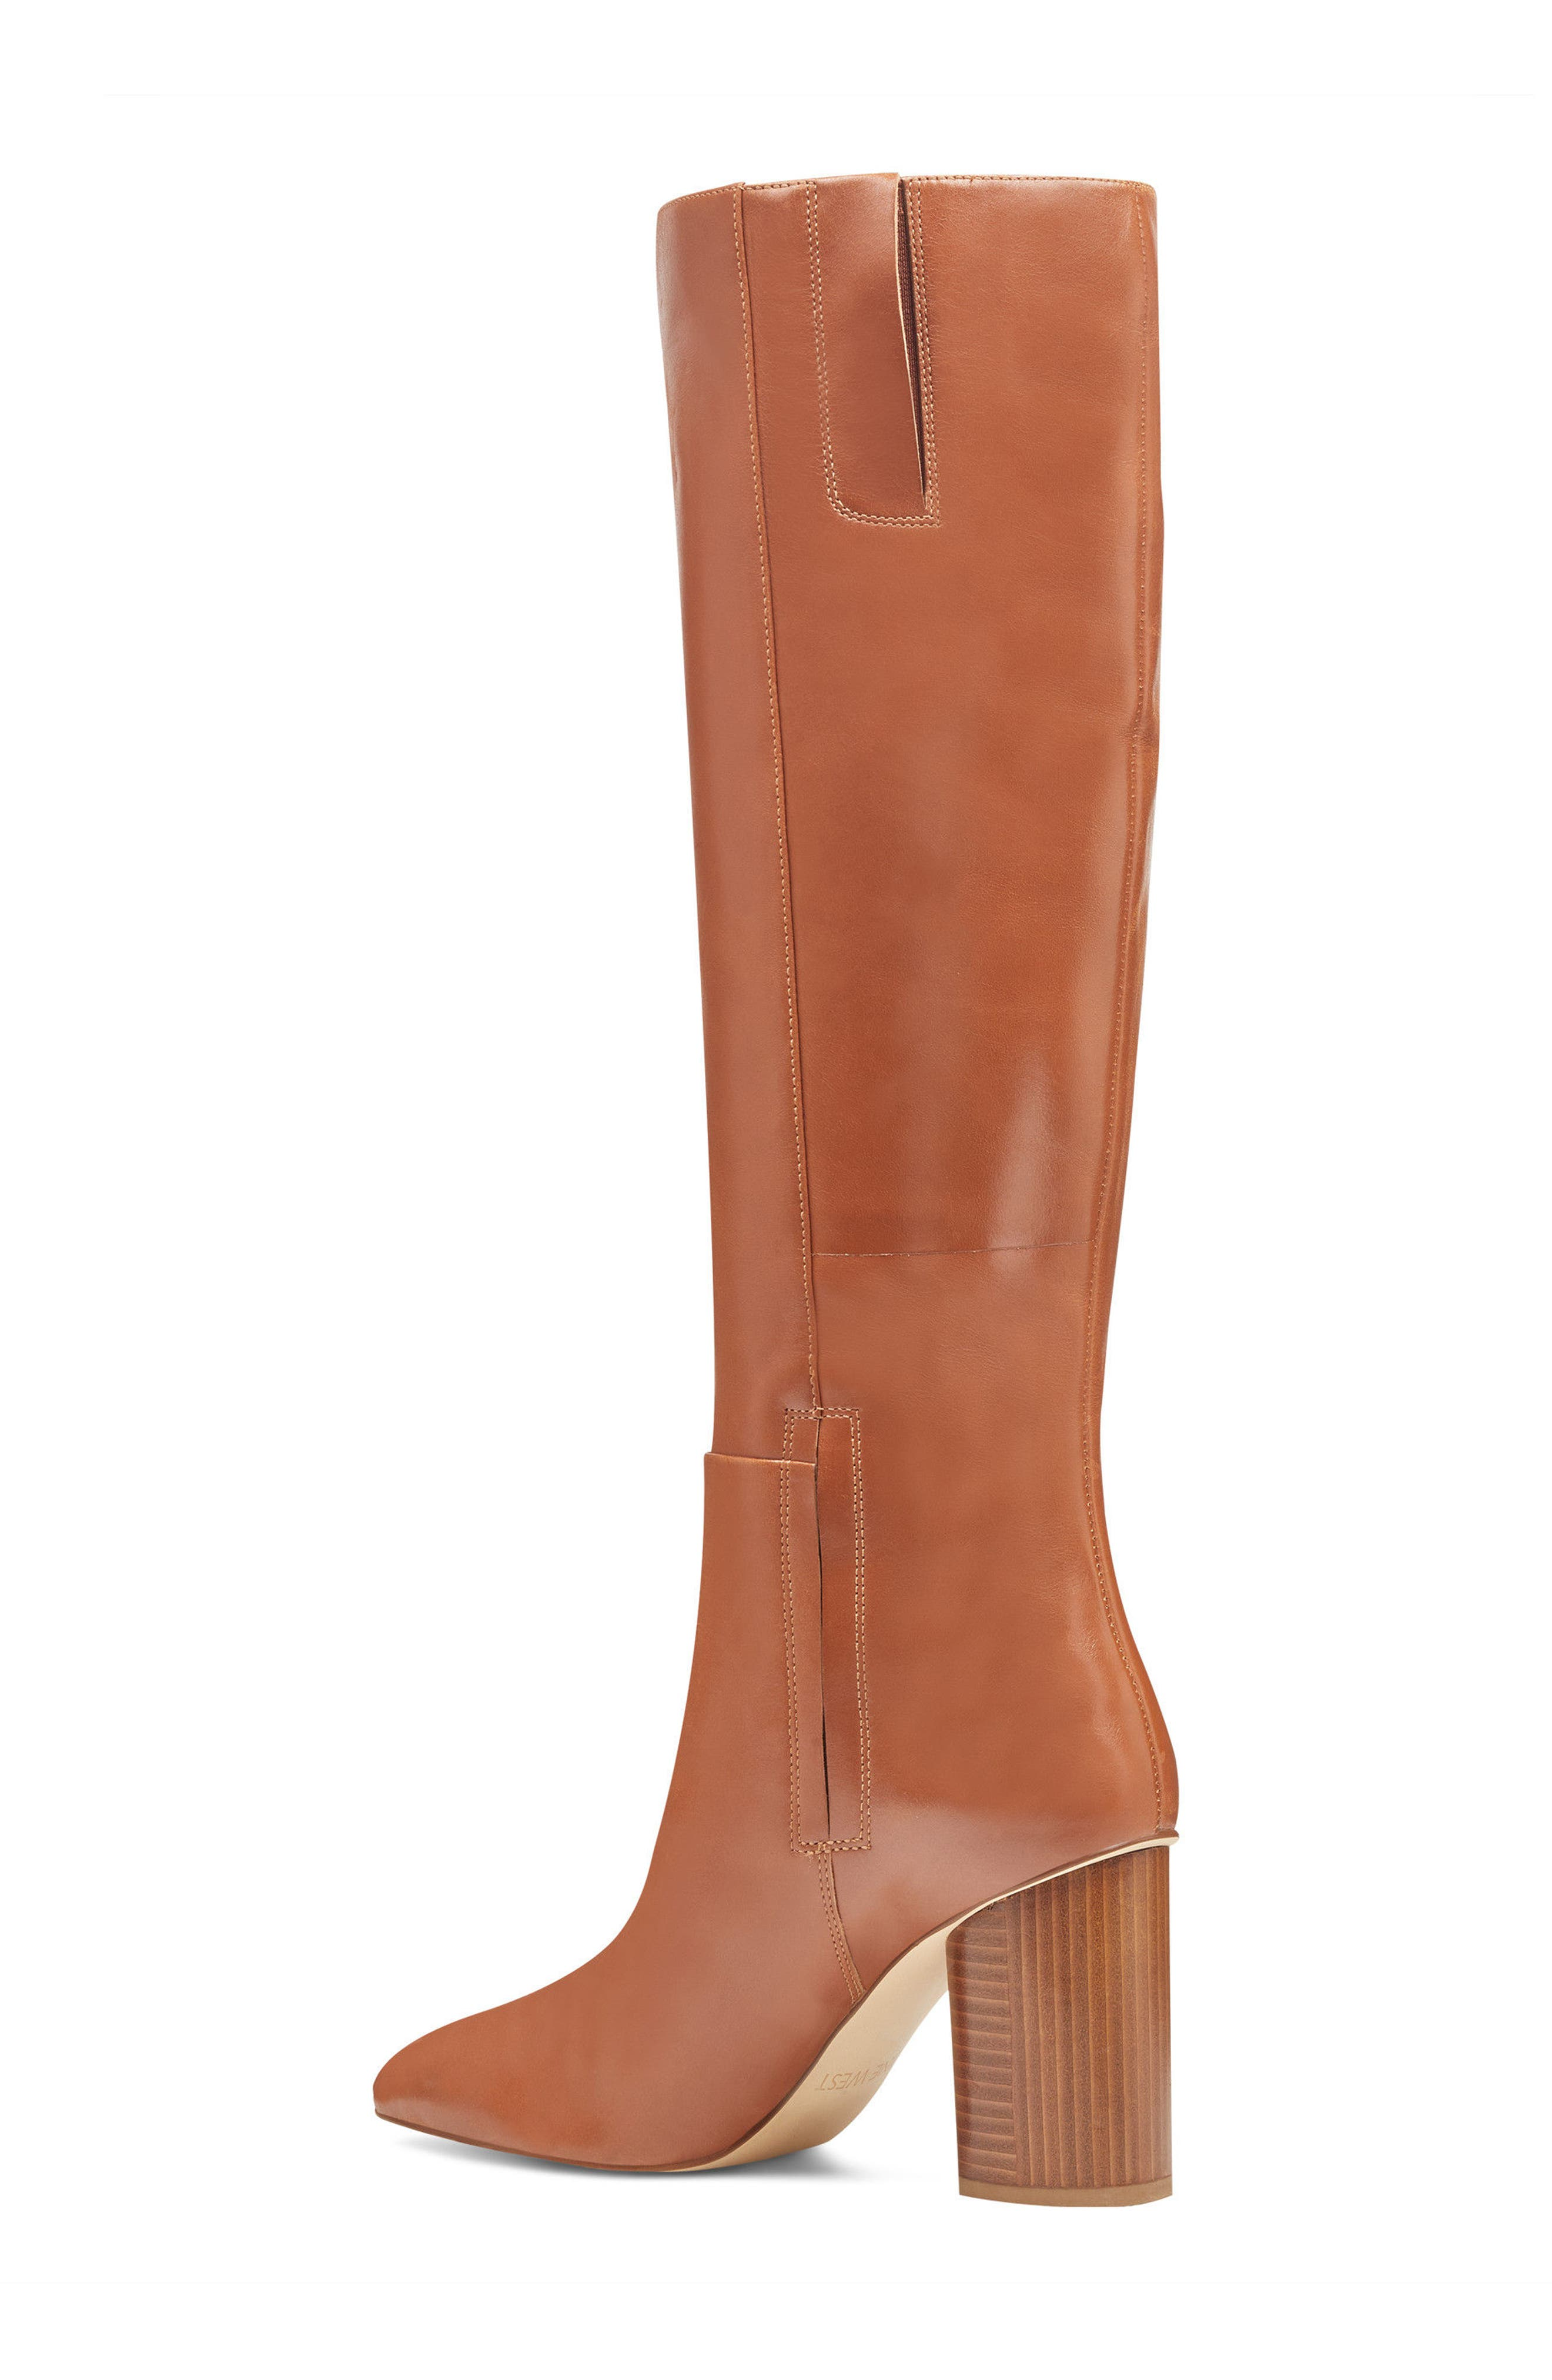 Christie Knee High Boot,                             Alternate thumbnail 4, color,